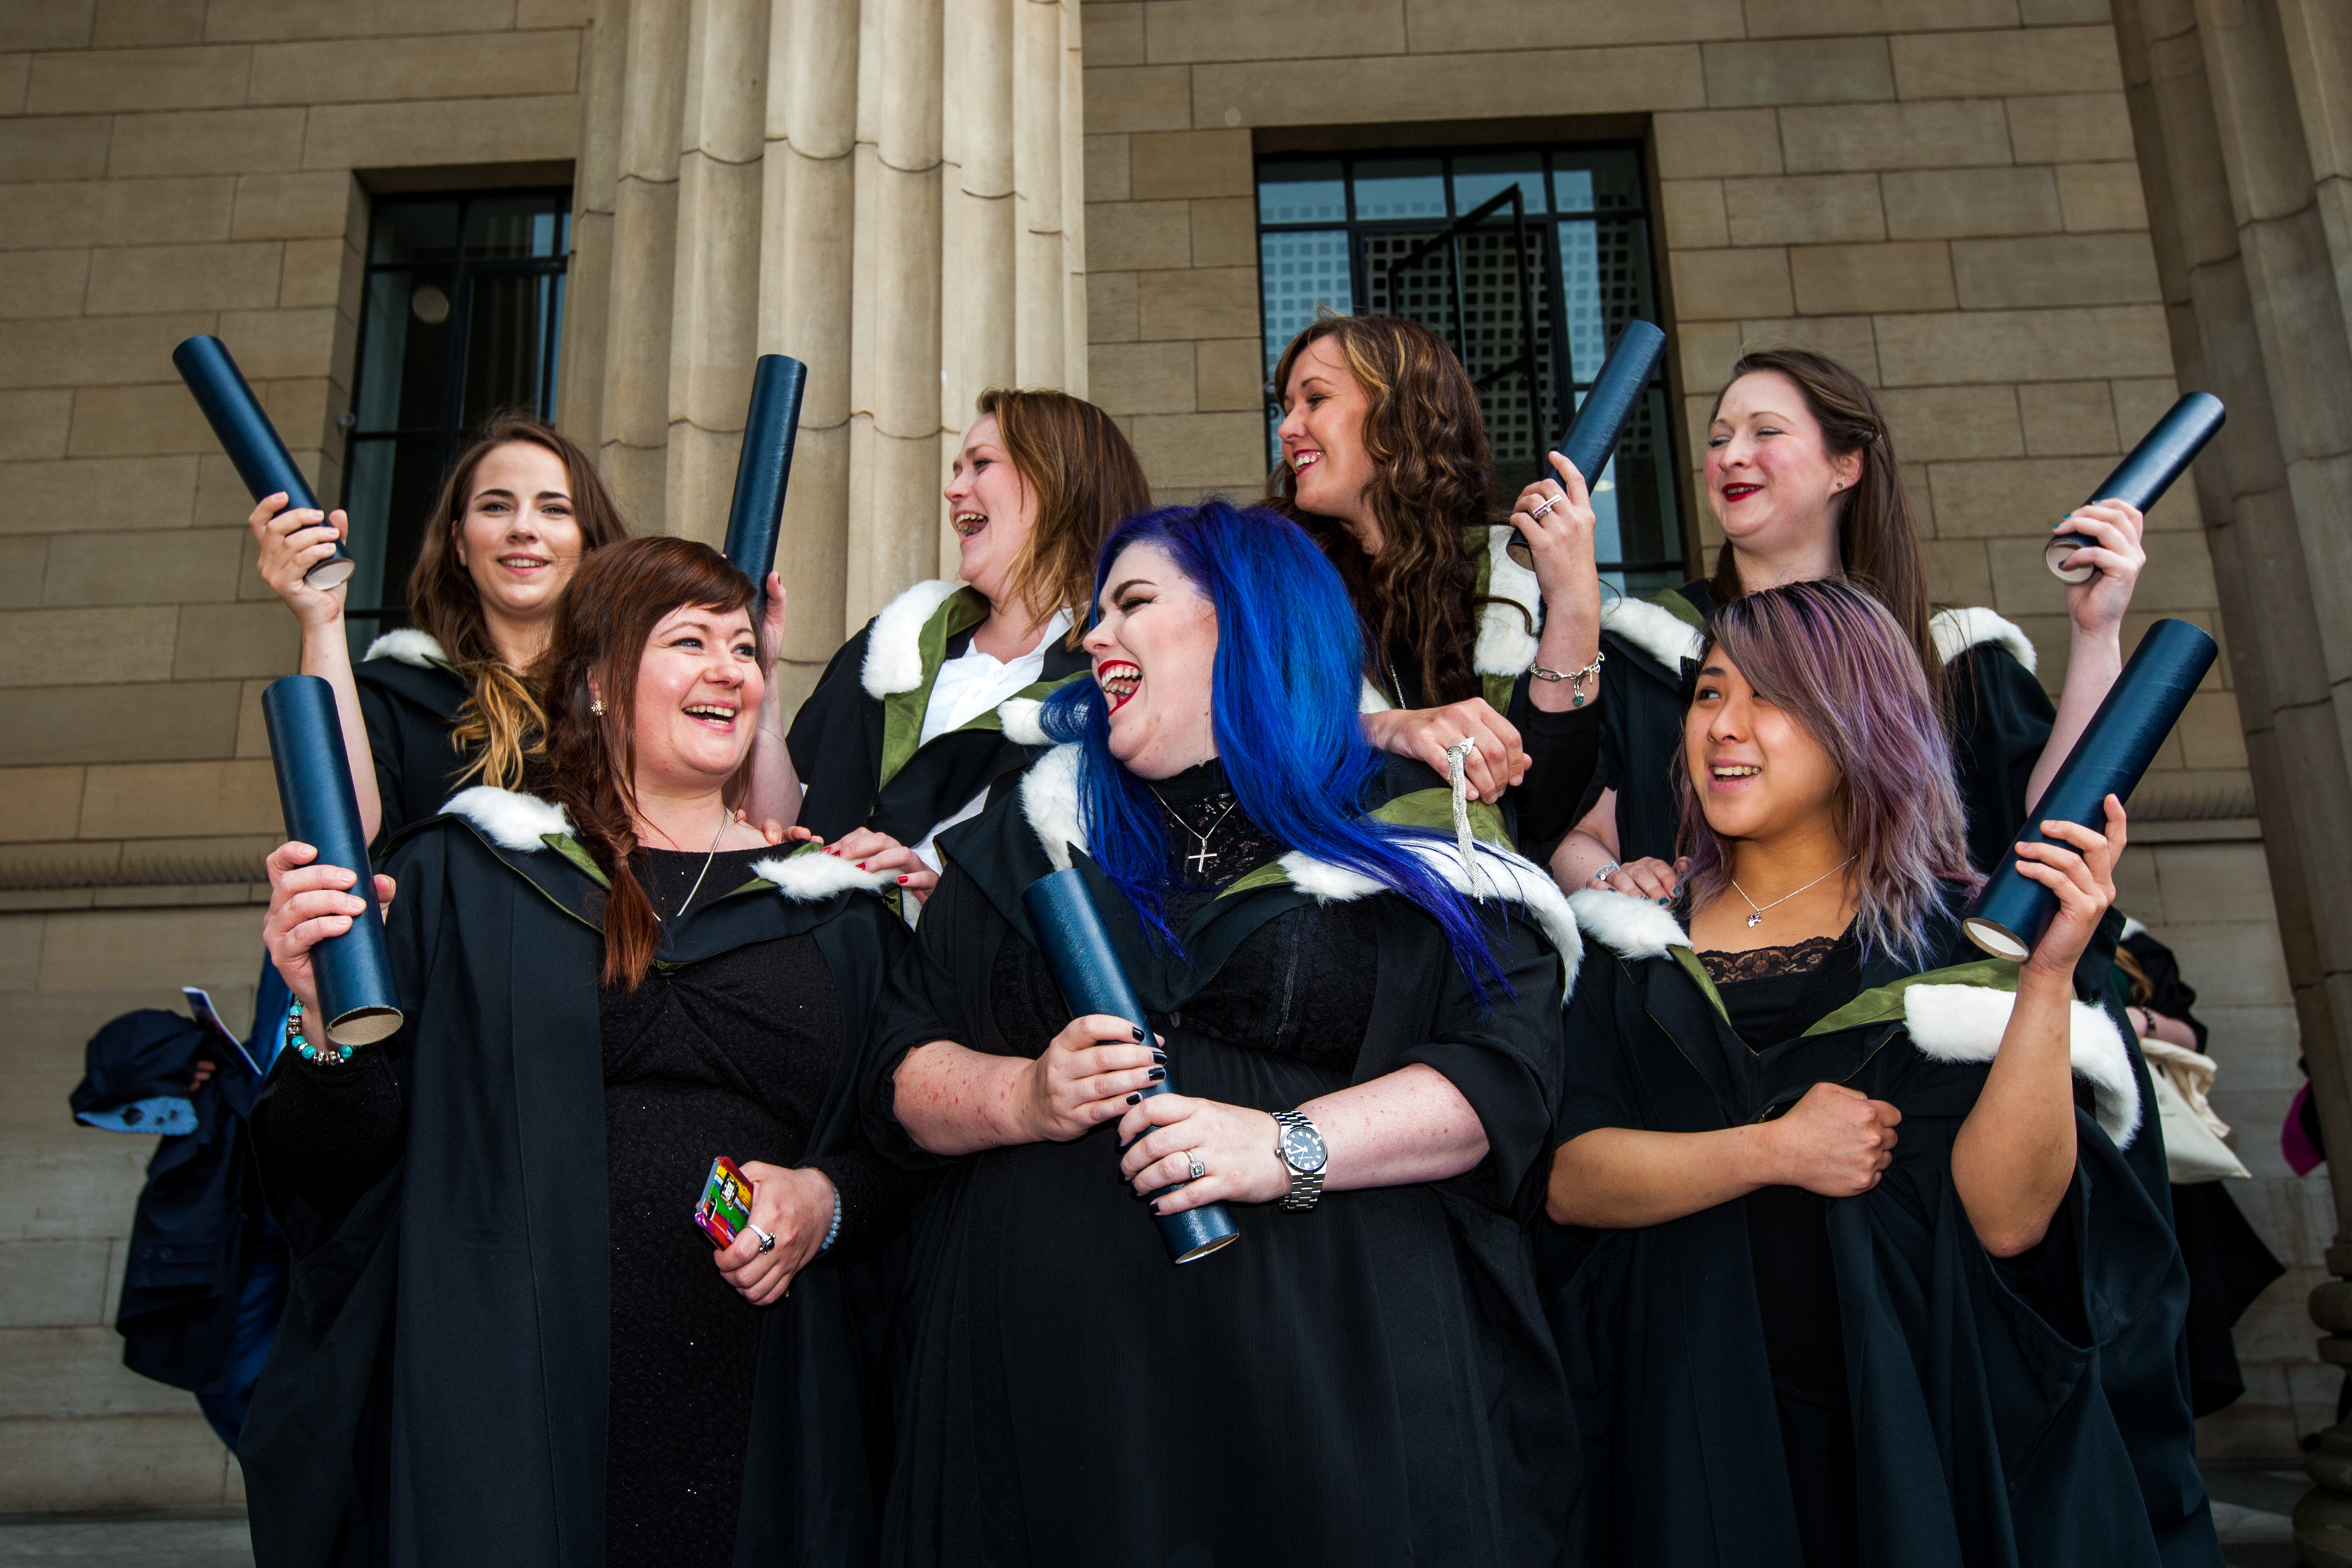 Graudates from the Jewellery Design and Technology degree - front left to right is Louise Campbell, Nikki Manning and Kathleen Lee. Back row, left to right is Laura Sykes, Julie Kelly, Romany Starrs and Sian Rushent.